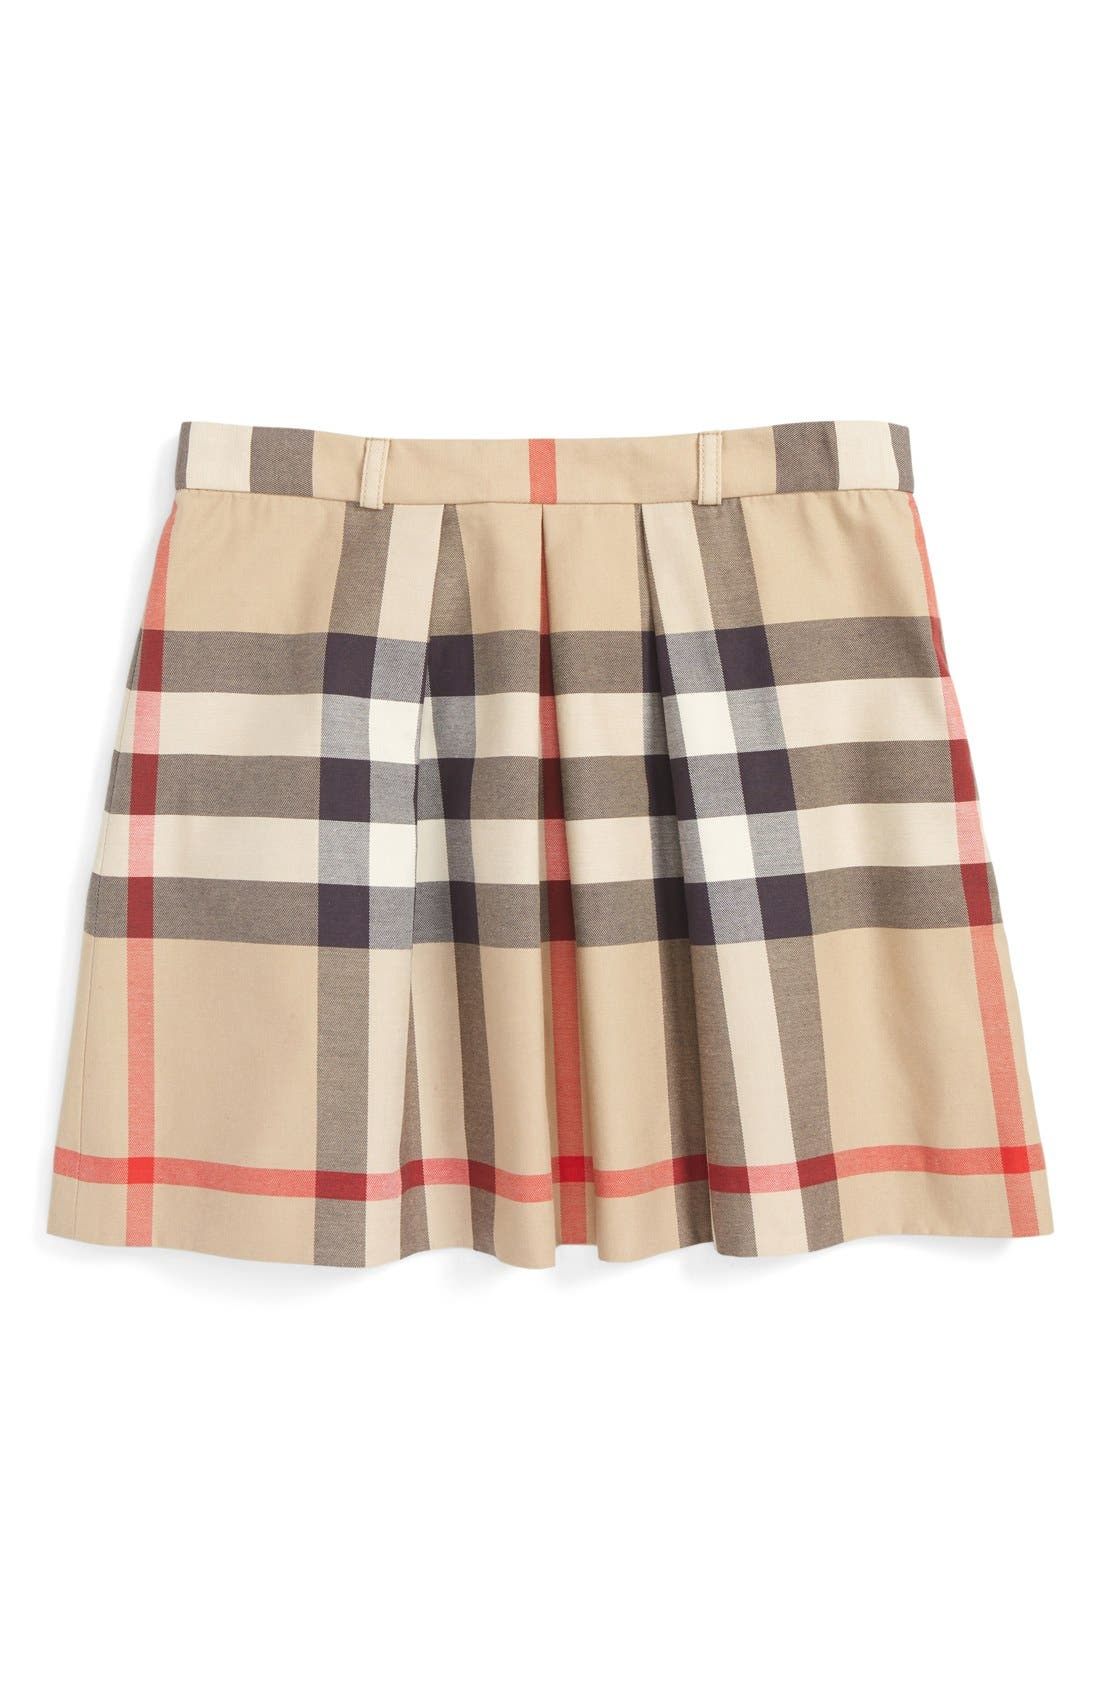 BURBERRY Pleated Check Skirt, Main, color, 272